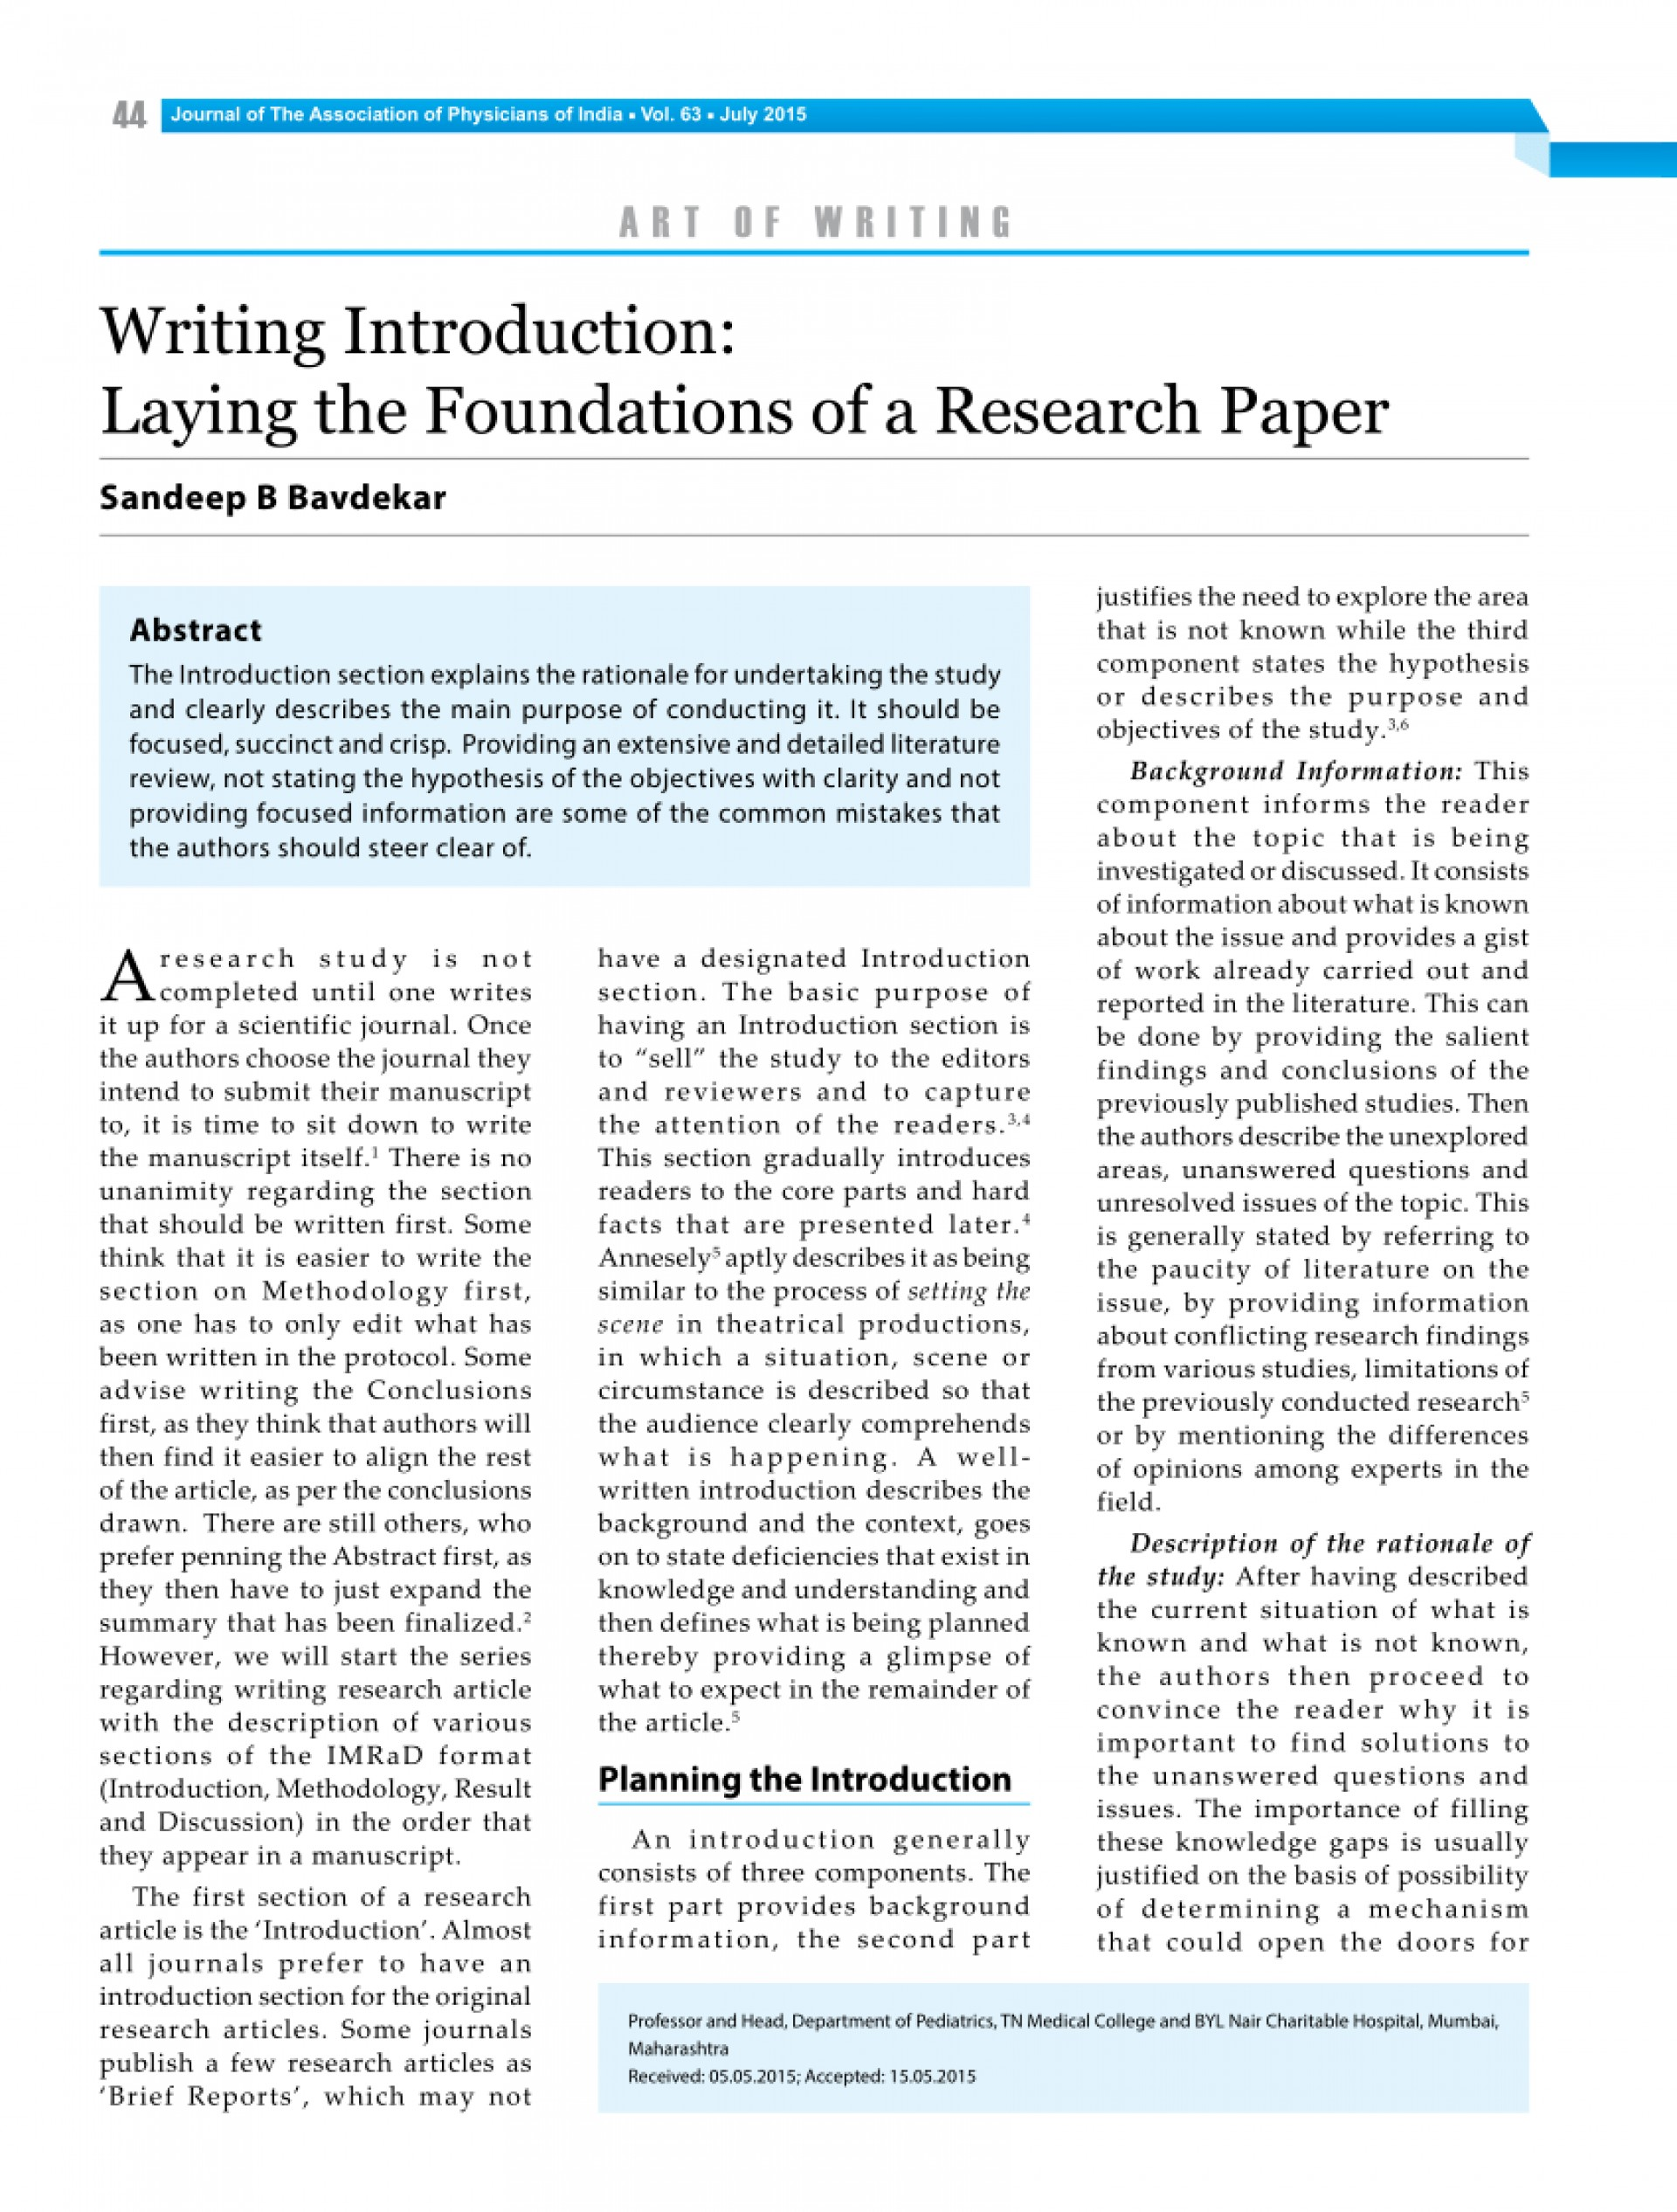 005 Research Paper How Do You Write Good Introduction For Amazing A Paragraph 1920